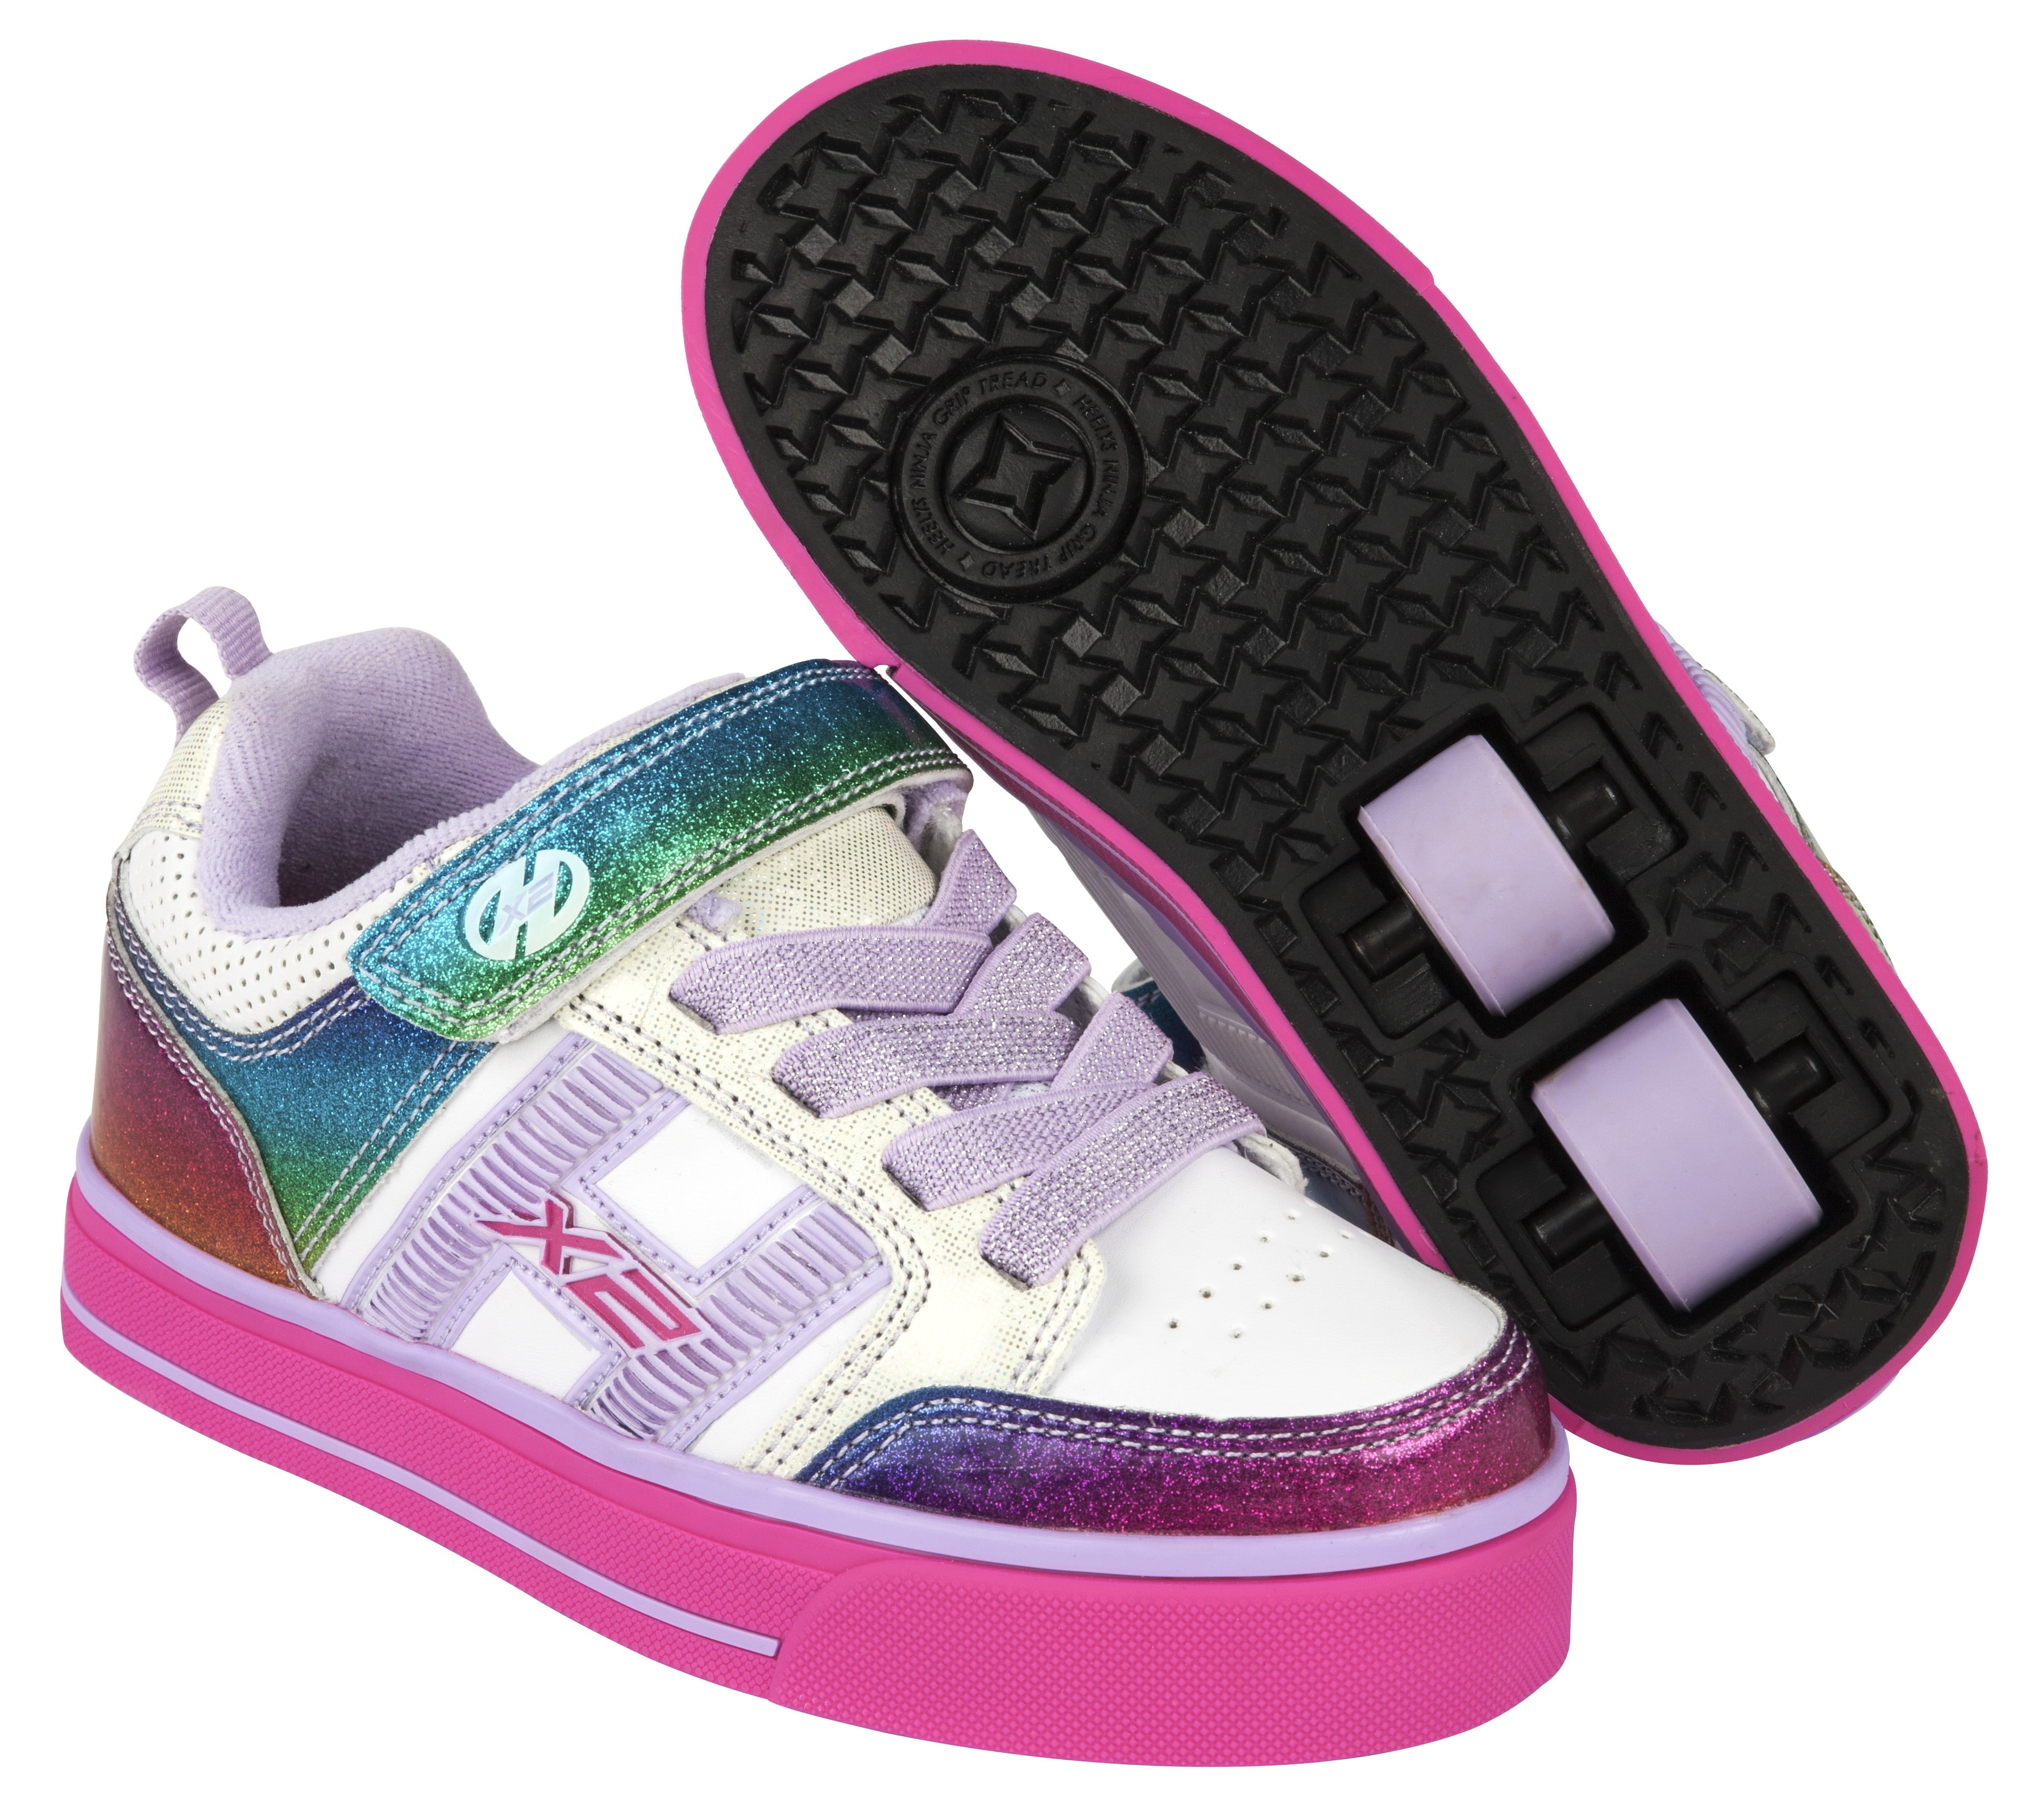 Led Shoes Uk Next Day Delivery